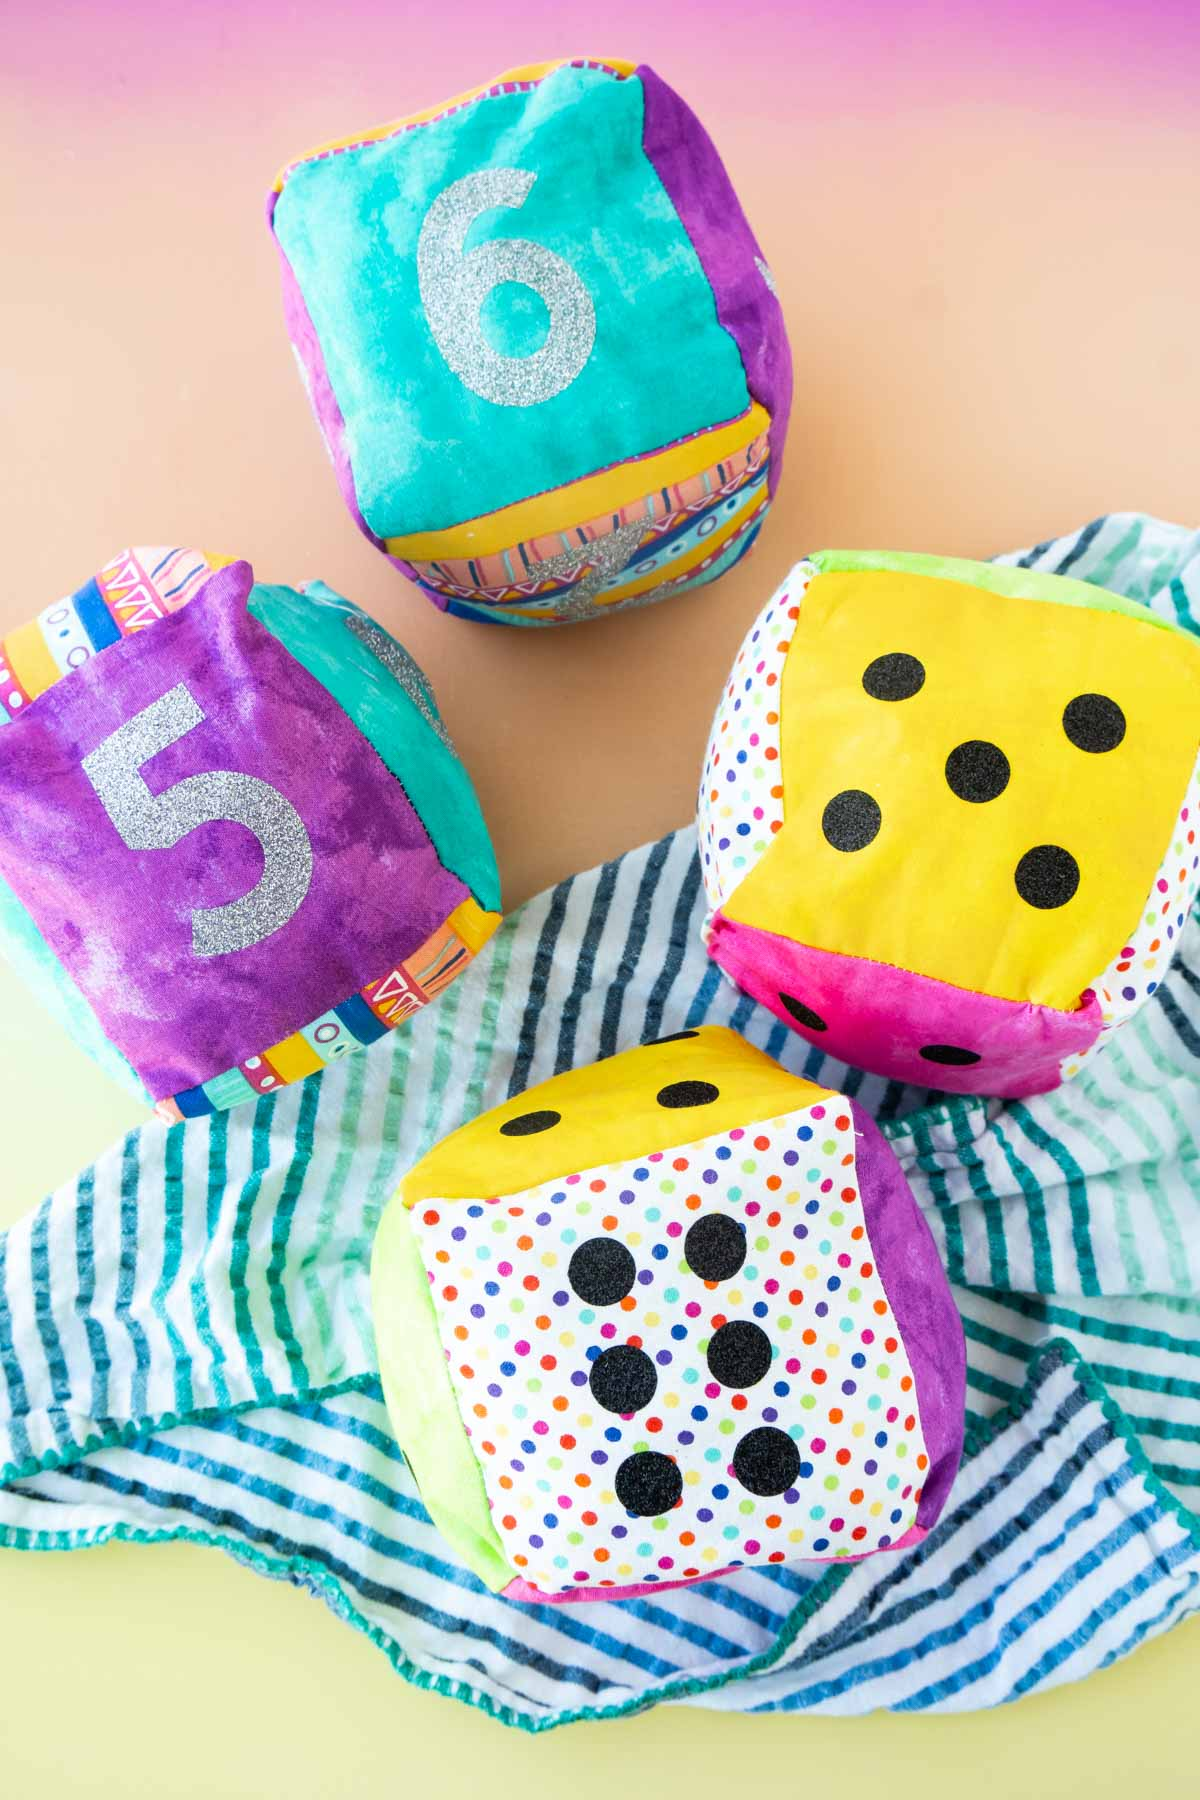 Two sets of fabric DIY dice on a colored background